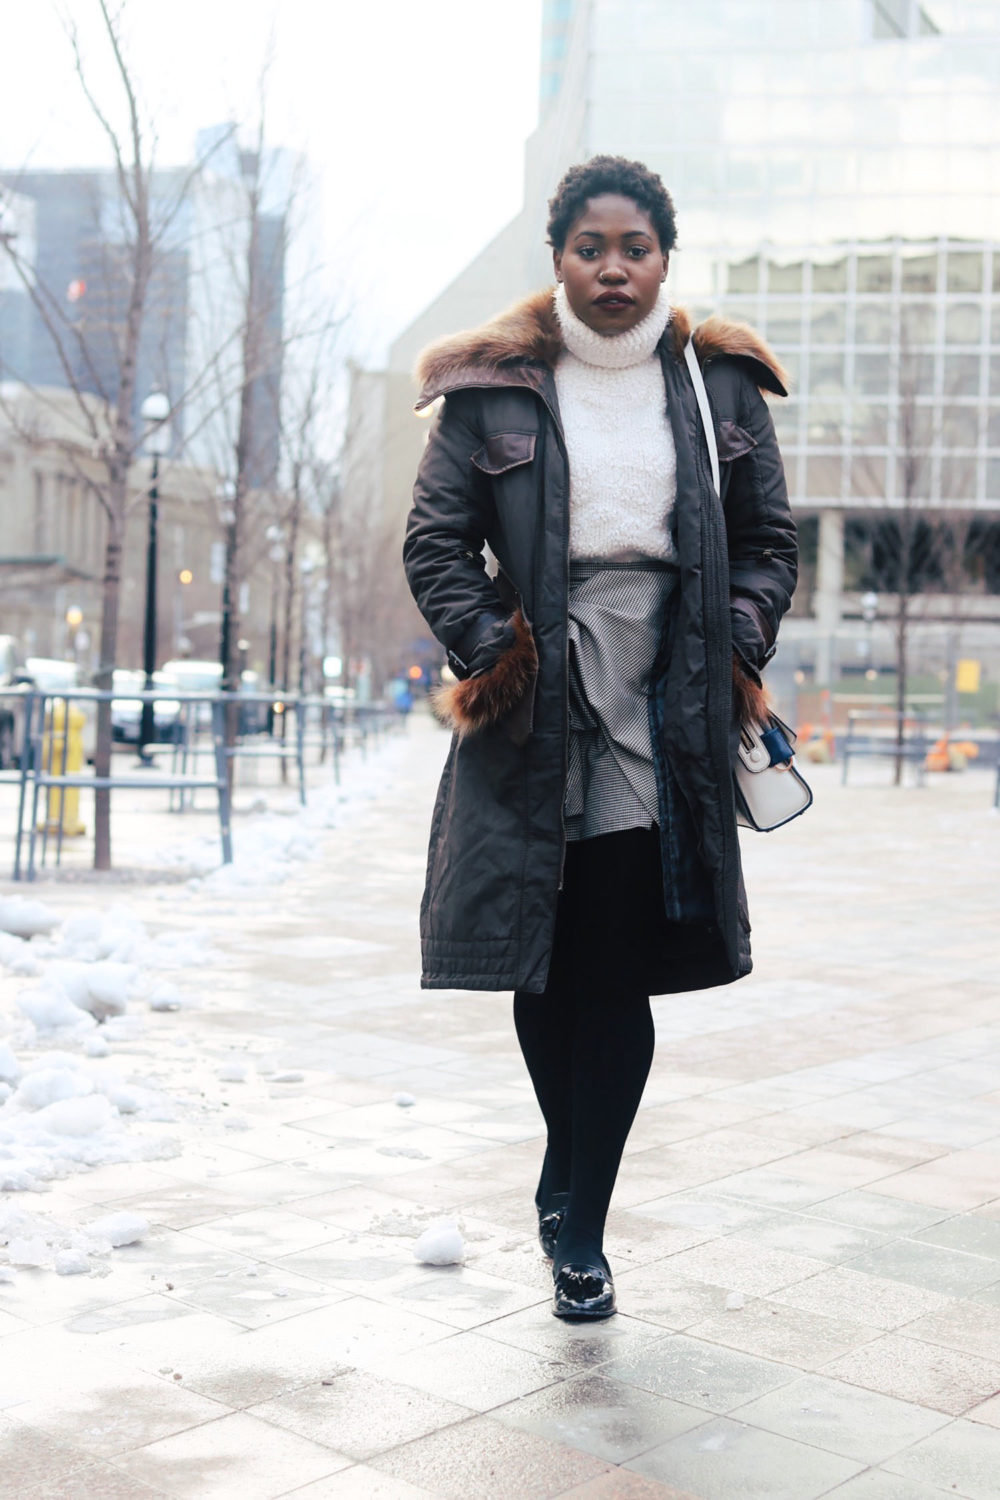 style-synopsis-winter-fashion.